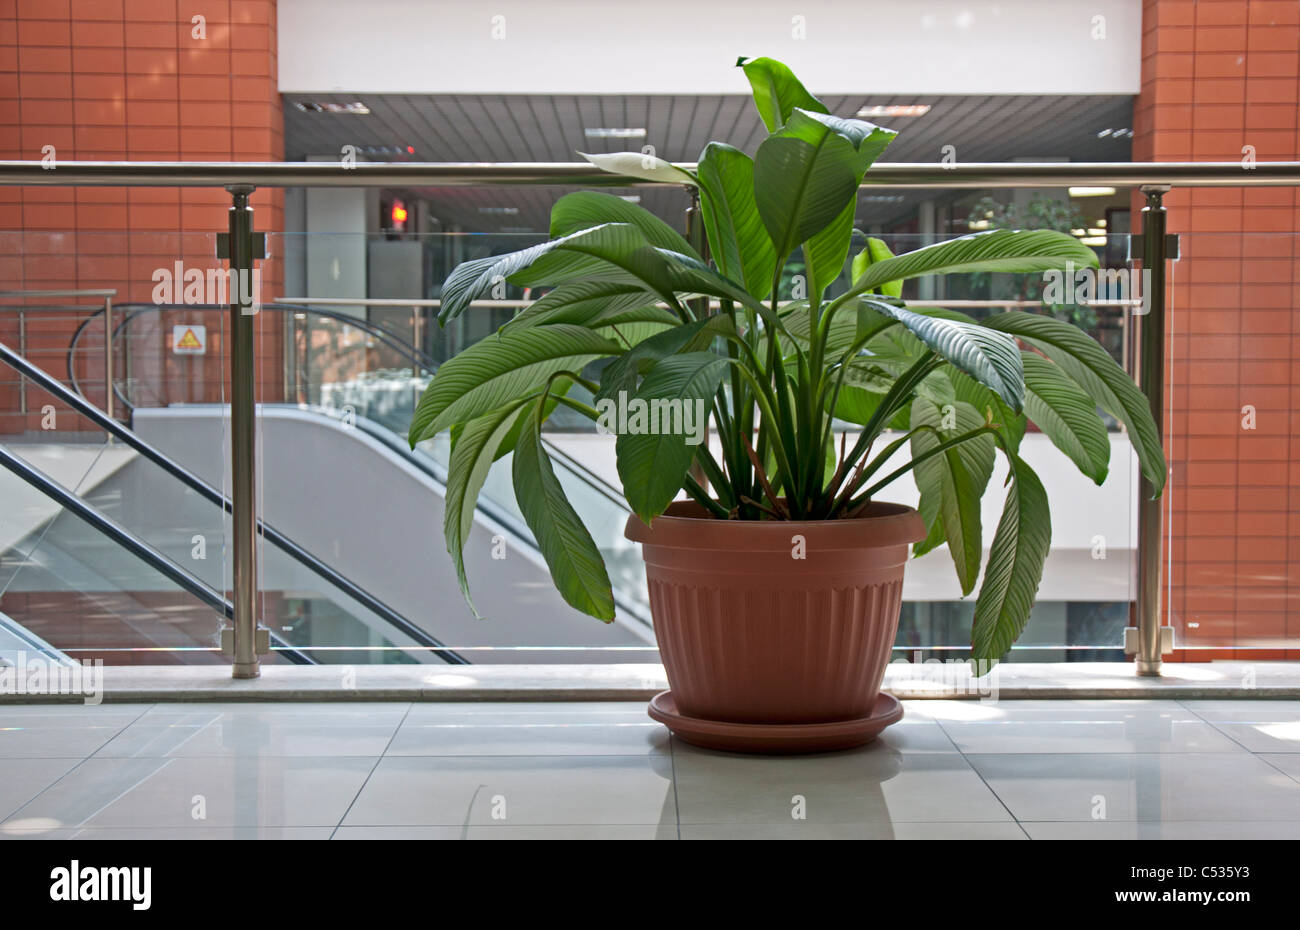 office flower pots. Office Plants. Flower Pot In Building Pots